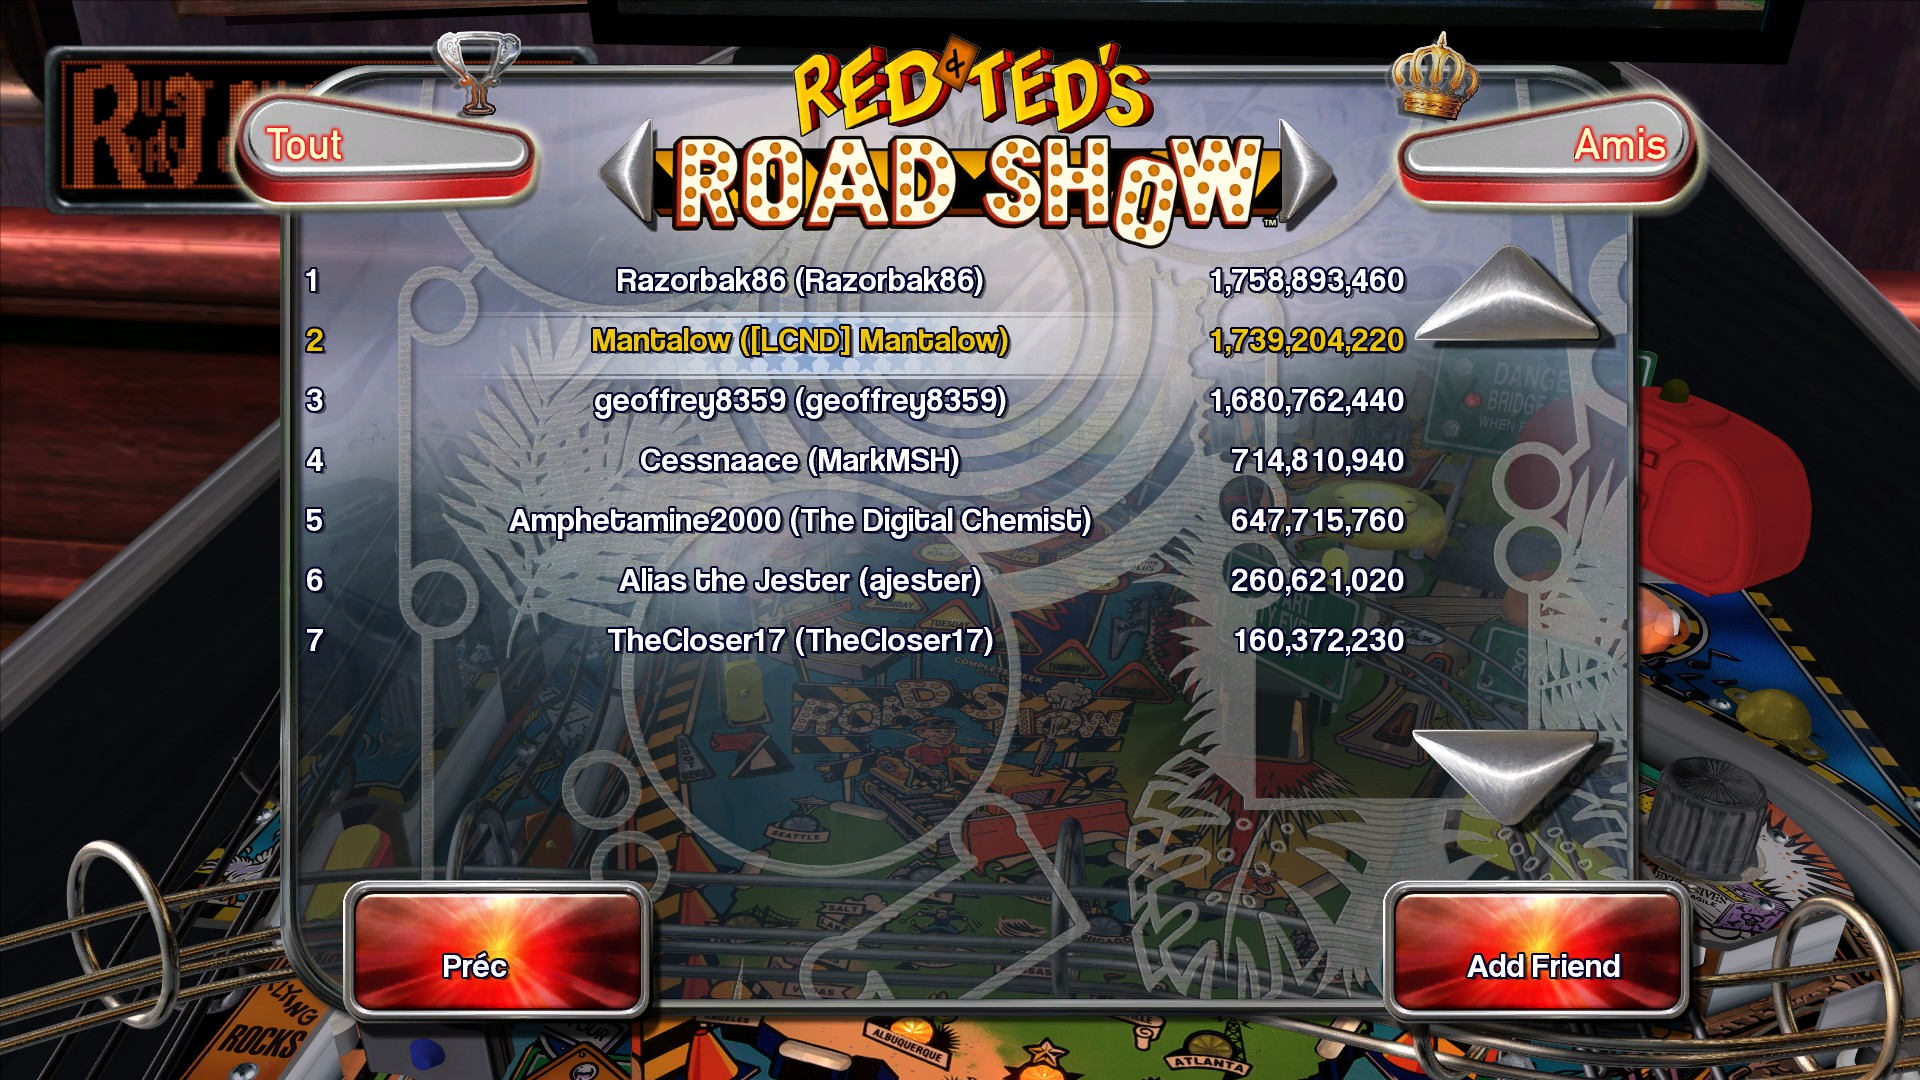 Mantalow: Pinball Arcade: Red and Ted